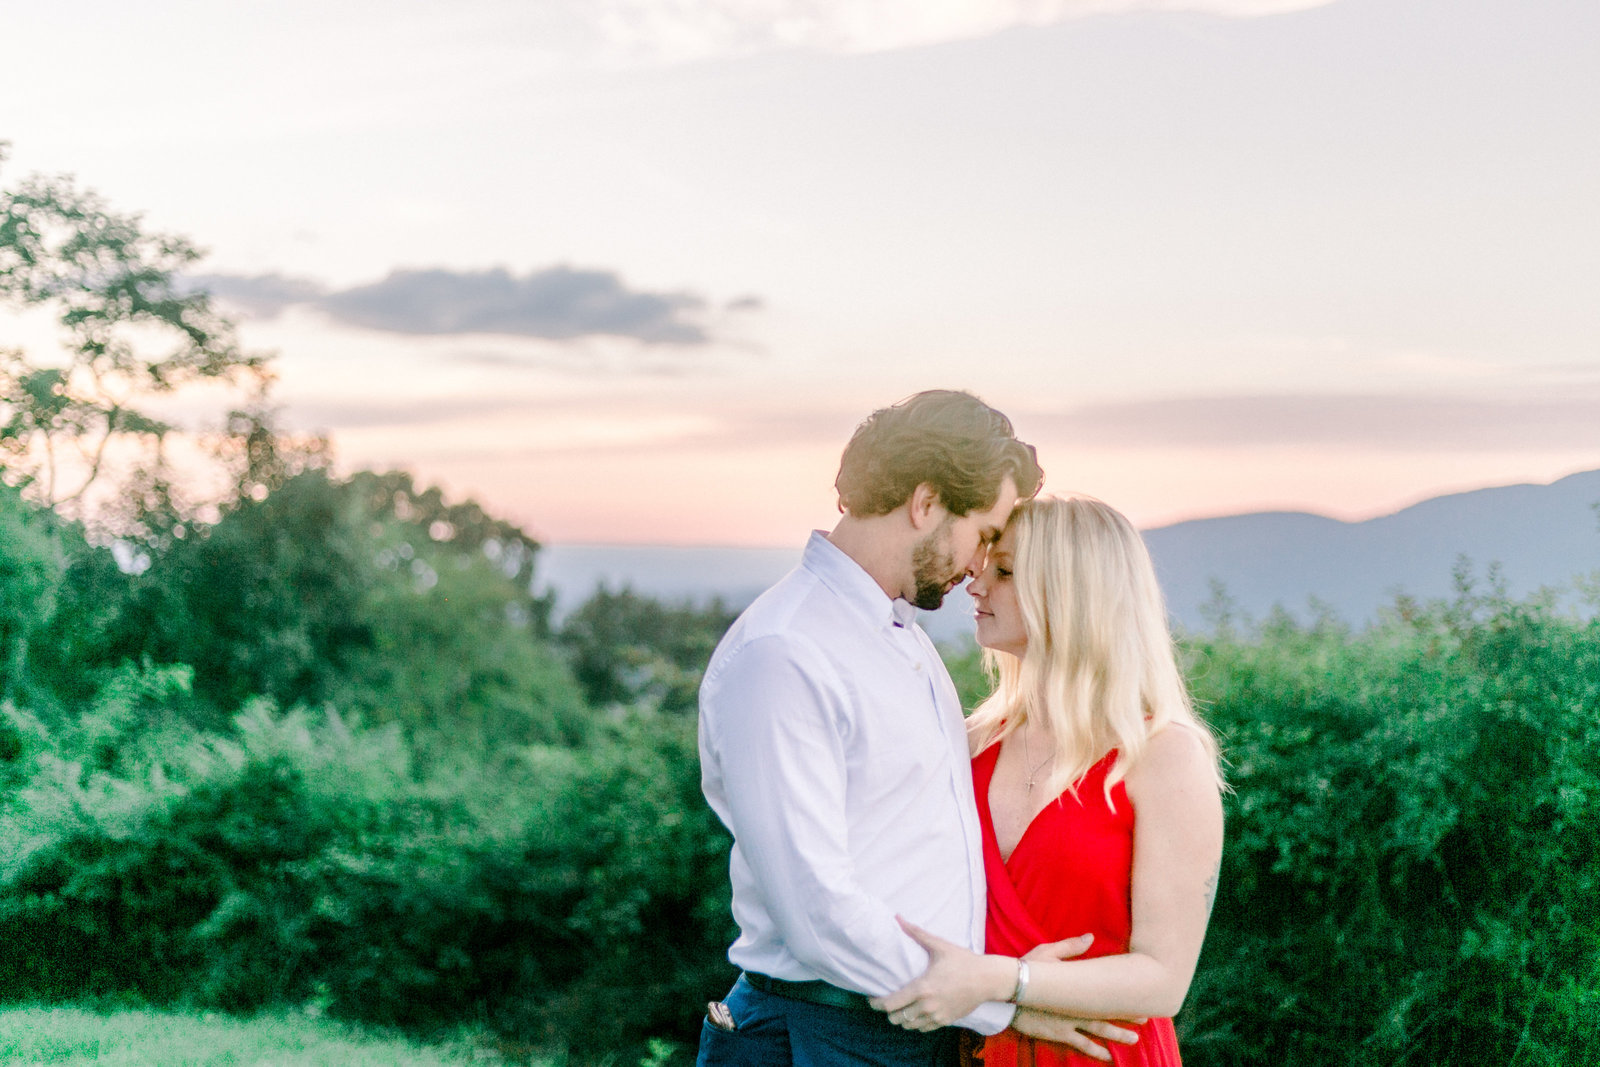 Romantic view for engagement photos captured by Staci Addison Photography